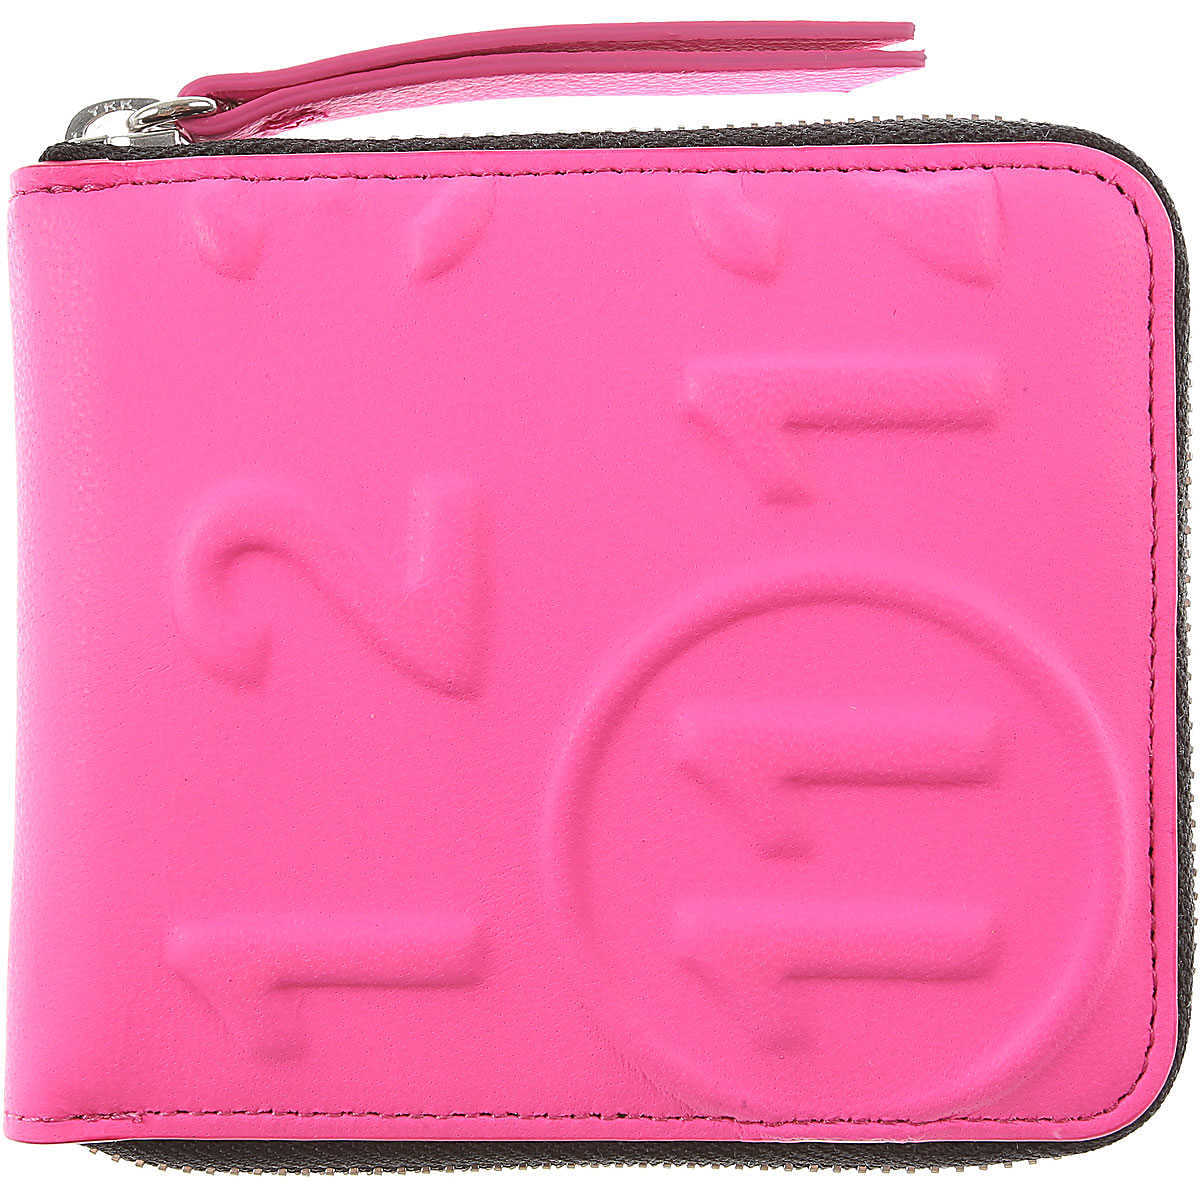 Maison Martin Margiela Wallet for Men On Sale Fuchsia DK - GOOFASH - Mens WALLETS